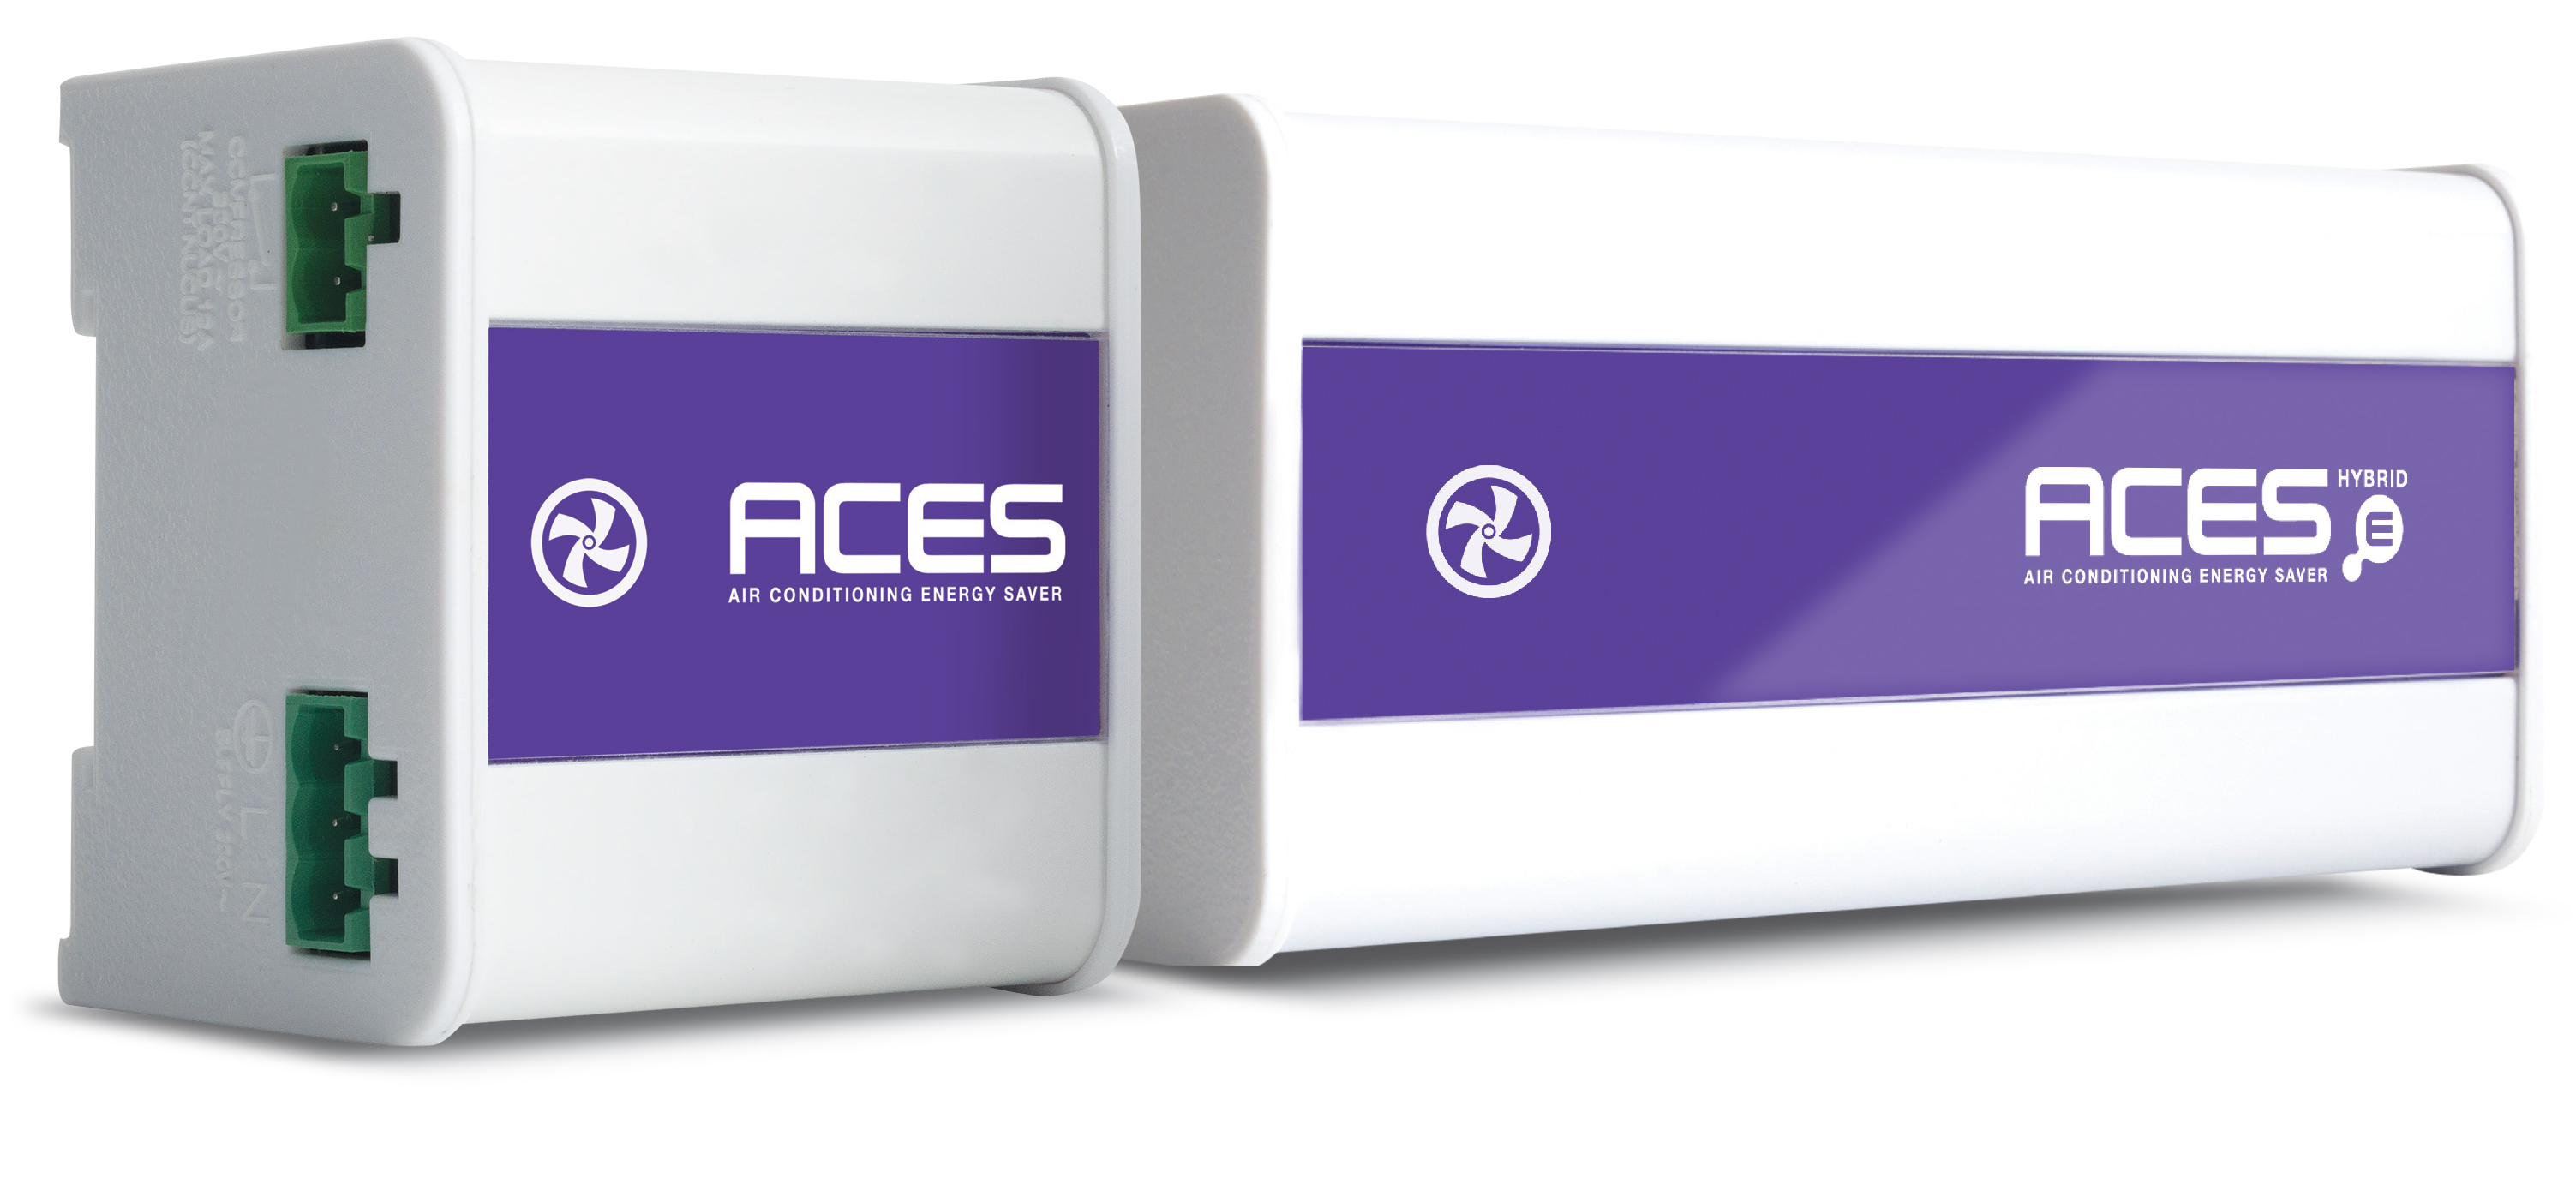 Air Conditioning Energy Saver (ACES)